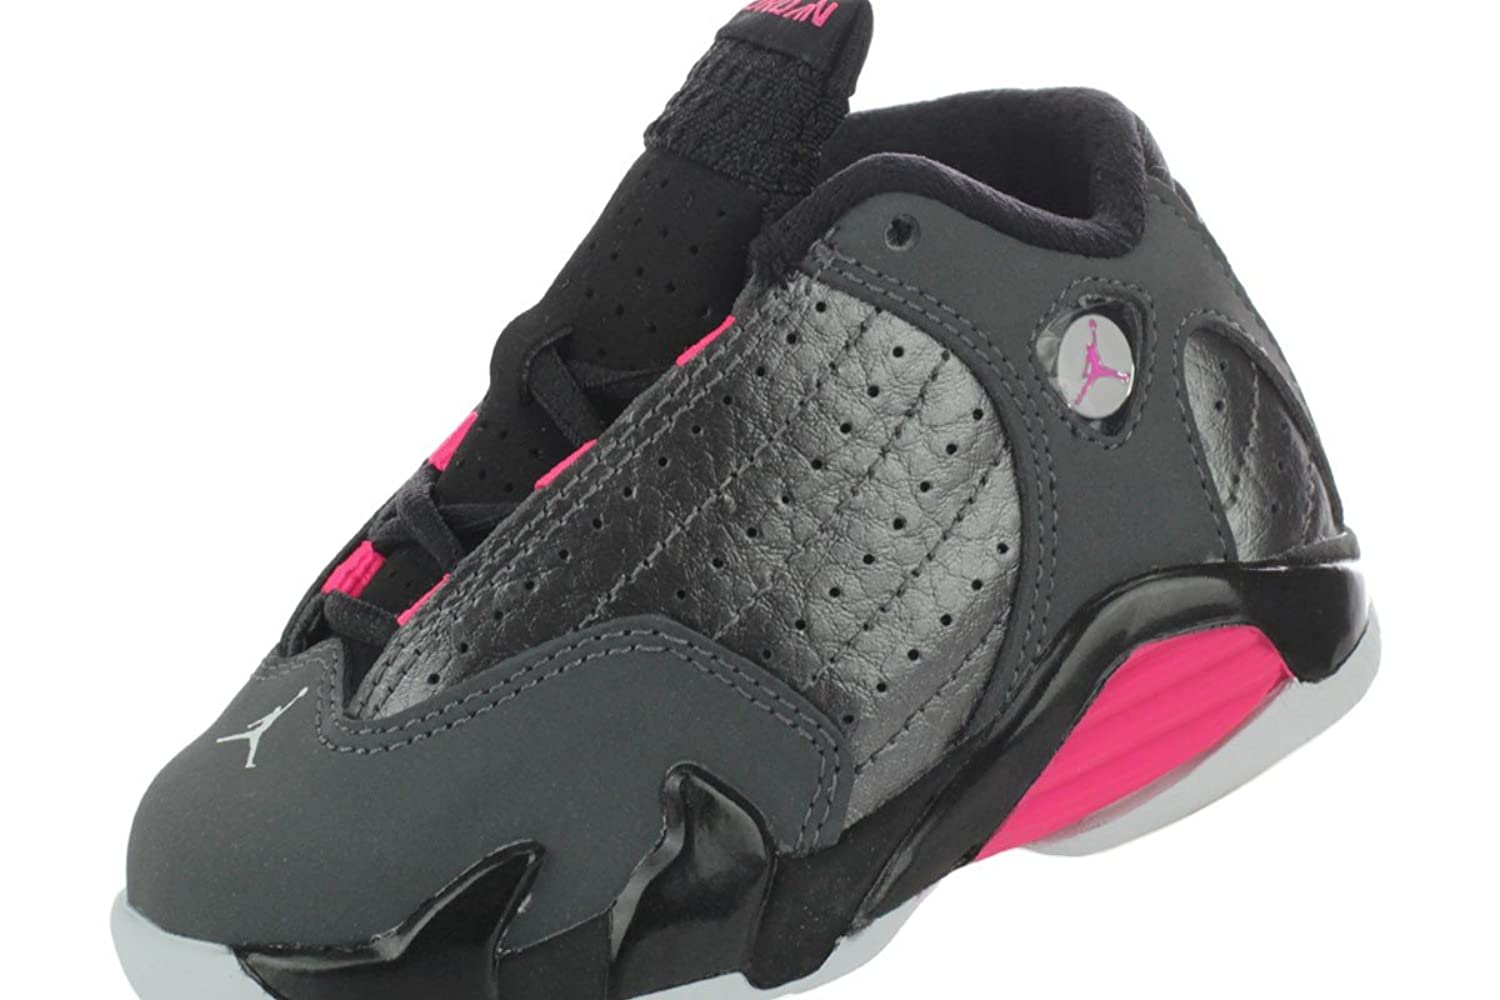 Jordan 14 for girls